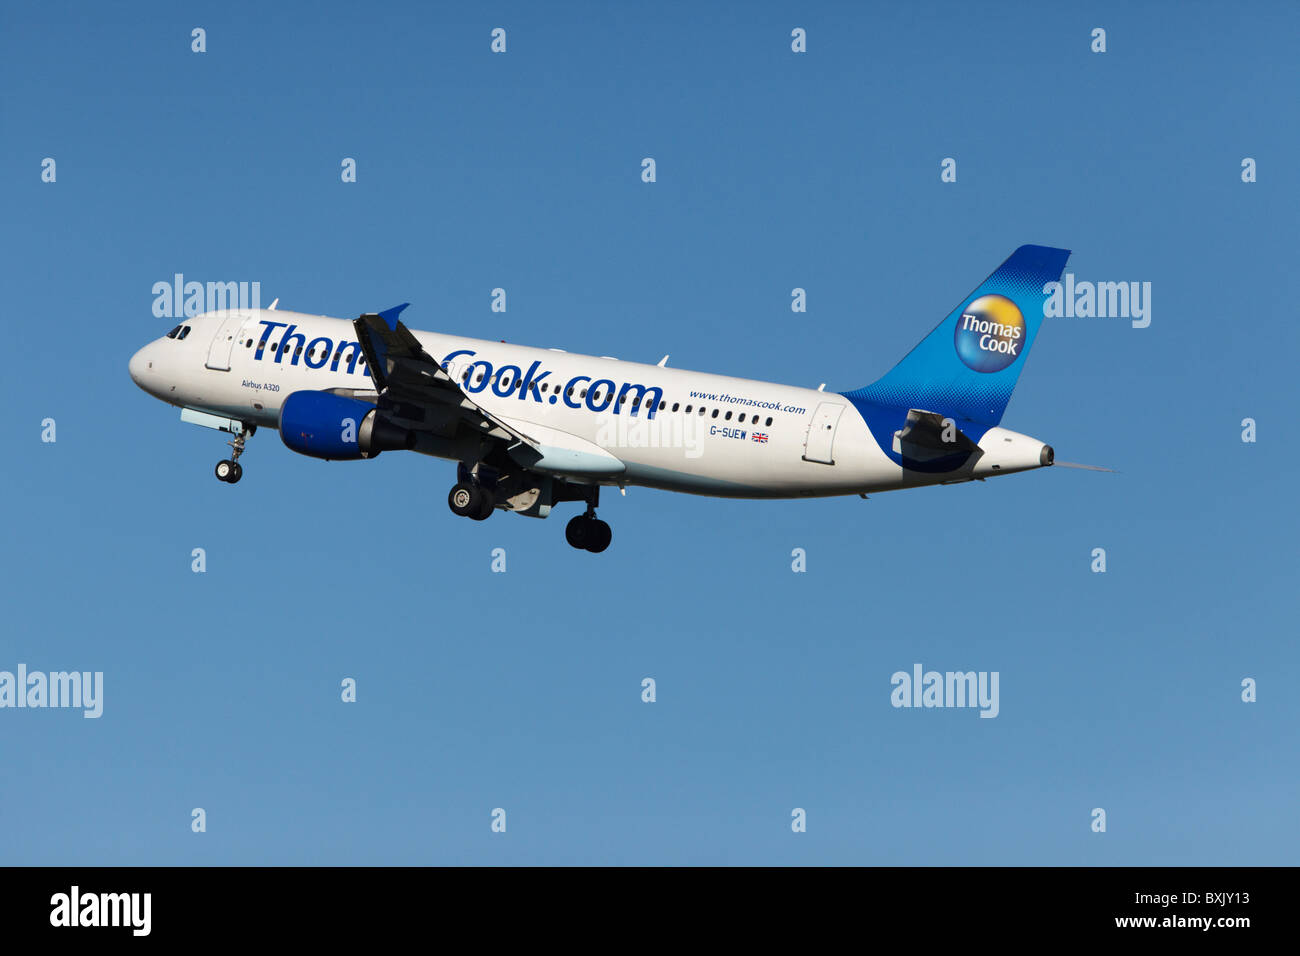 Thomas Cook Airlines Airbus A320-214 airborne at Stansted Airport, Essex, England, United Kingdom - Stock Image